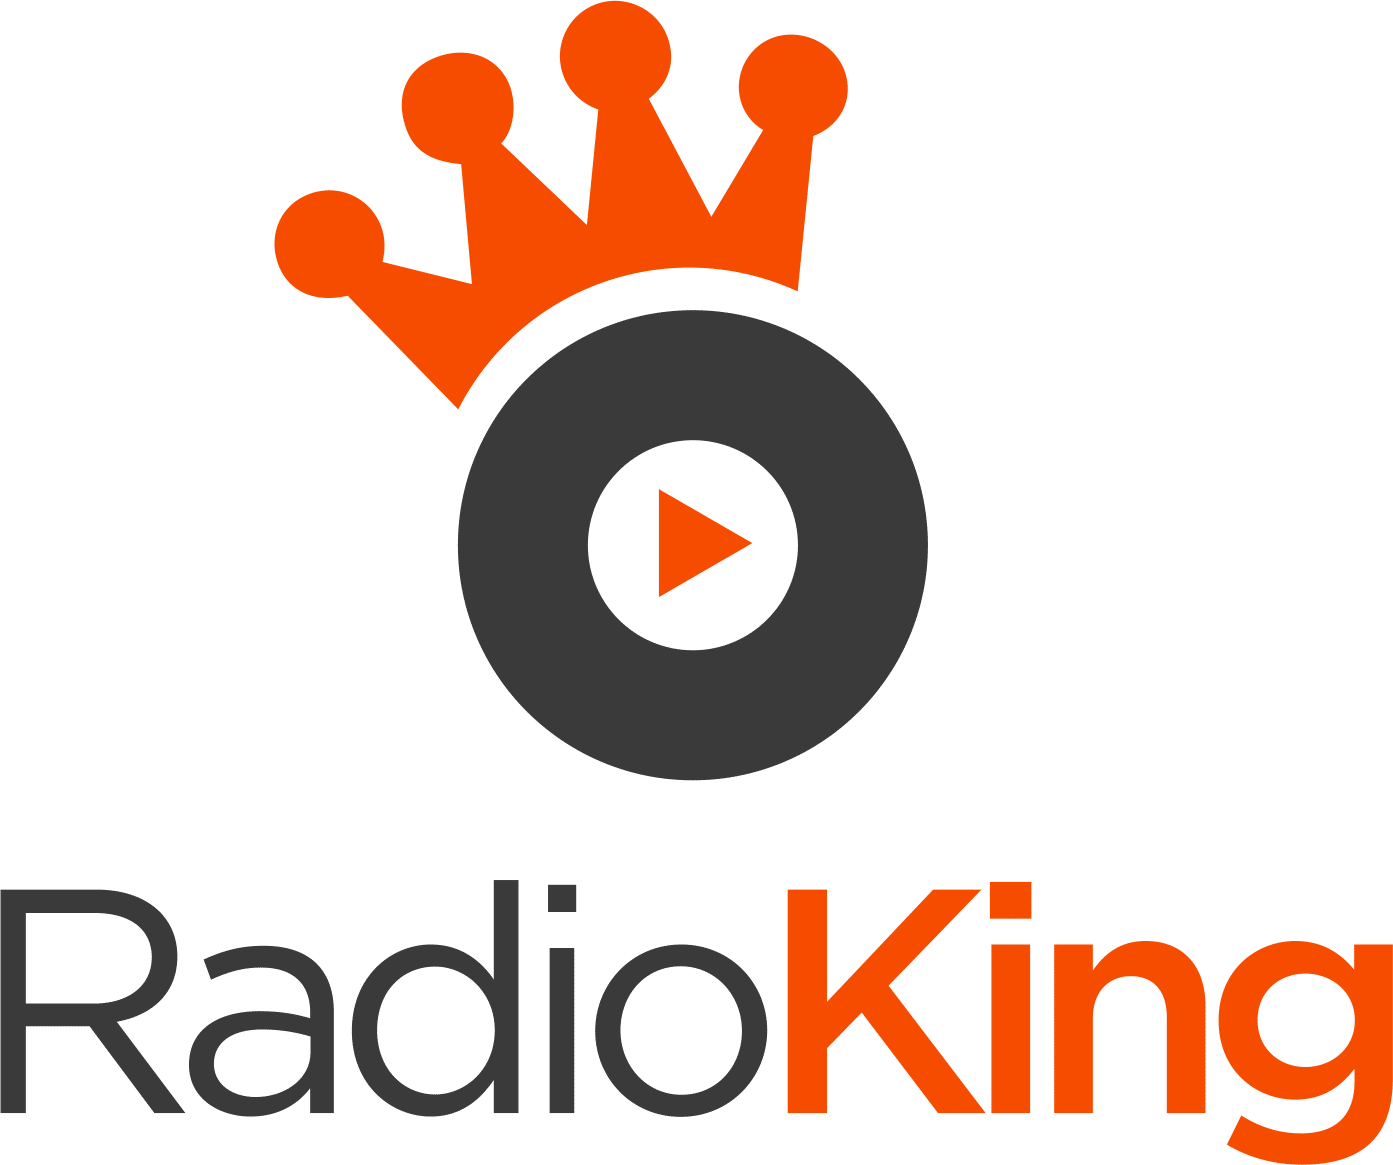 RadioKing_logo-carre.png